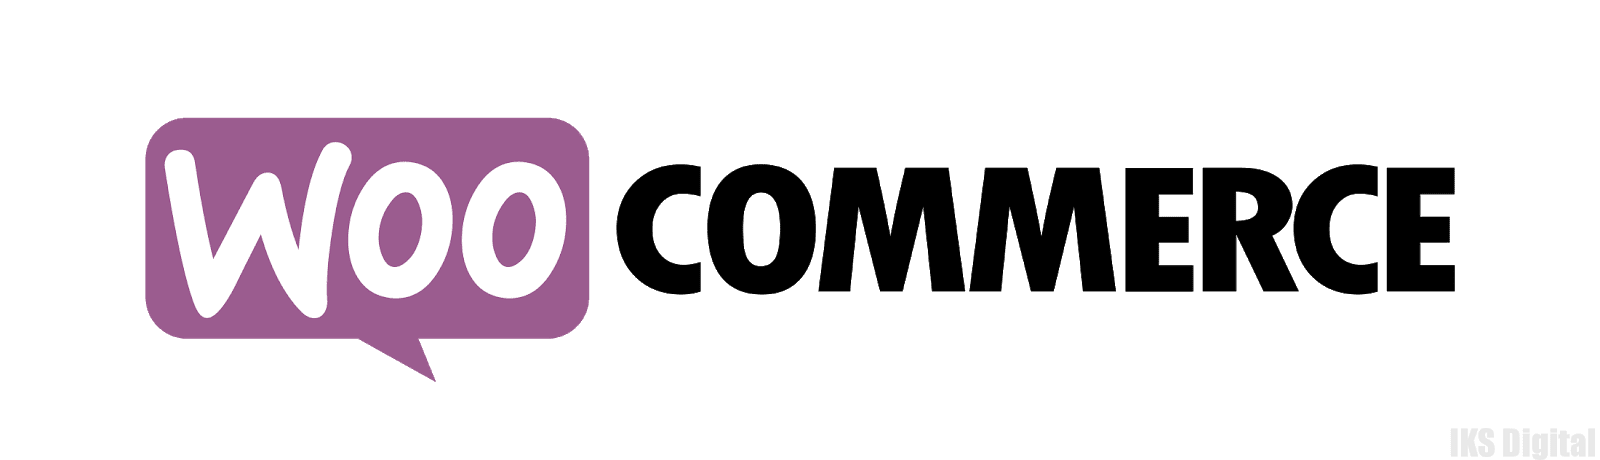 WooCommerce 10 Best Open Source Ecommerce Platforms for 2019